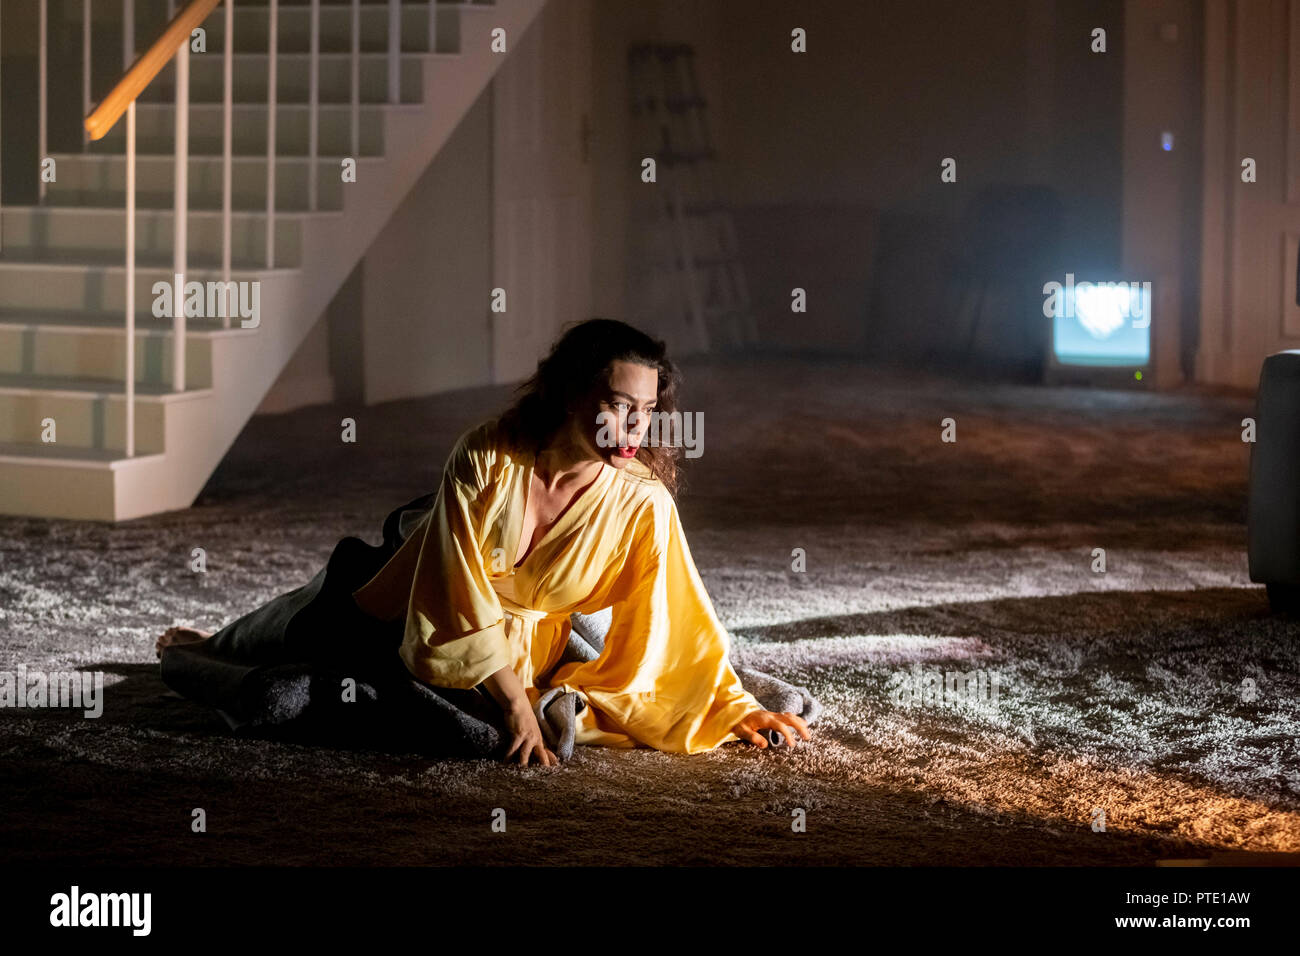 09 October 2018, Berlin: Ruth Rosenfeld appears in the role of Lady Madeline in the photo rehearsal for the premiere of 'Usher' by Claude Debussy and Annelies Van Parys in the production of Philippe Quesne at the Staatsoper Unter den Linden. Photo: Christoph Soeder/dpa - Stock Image